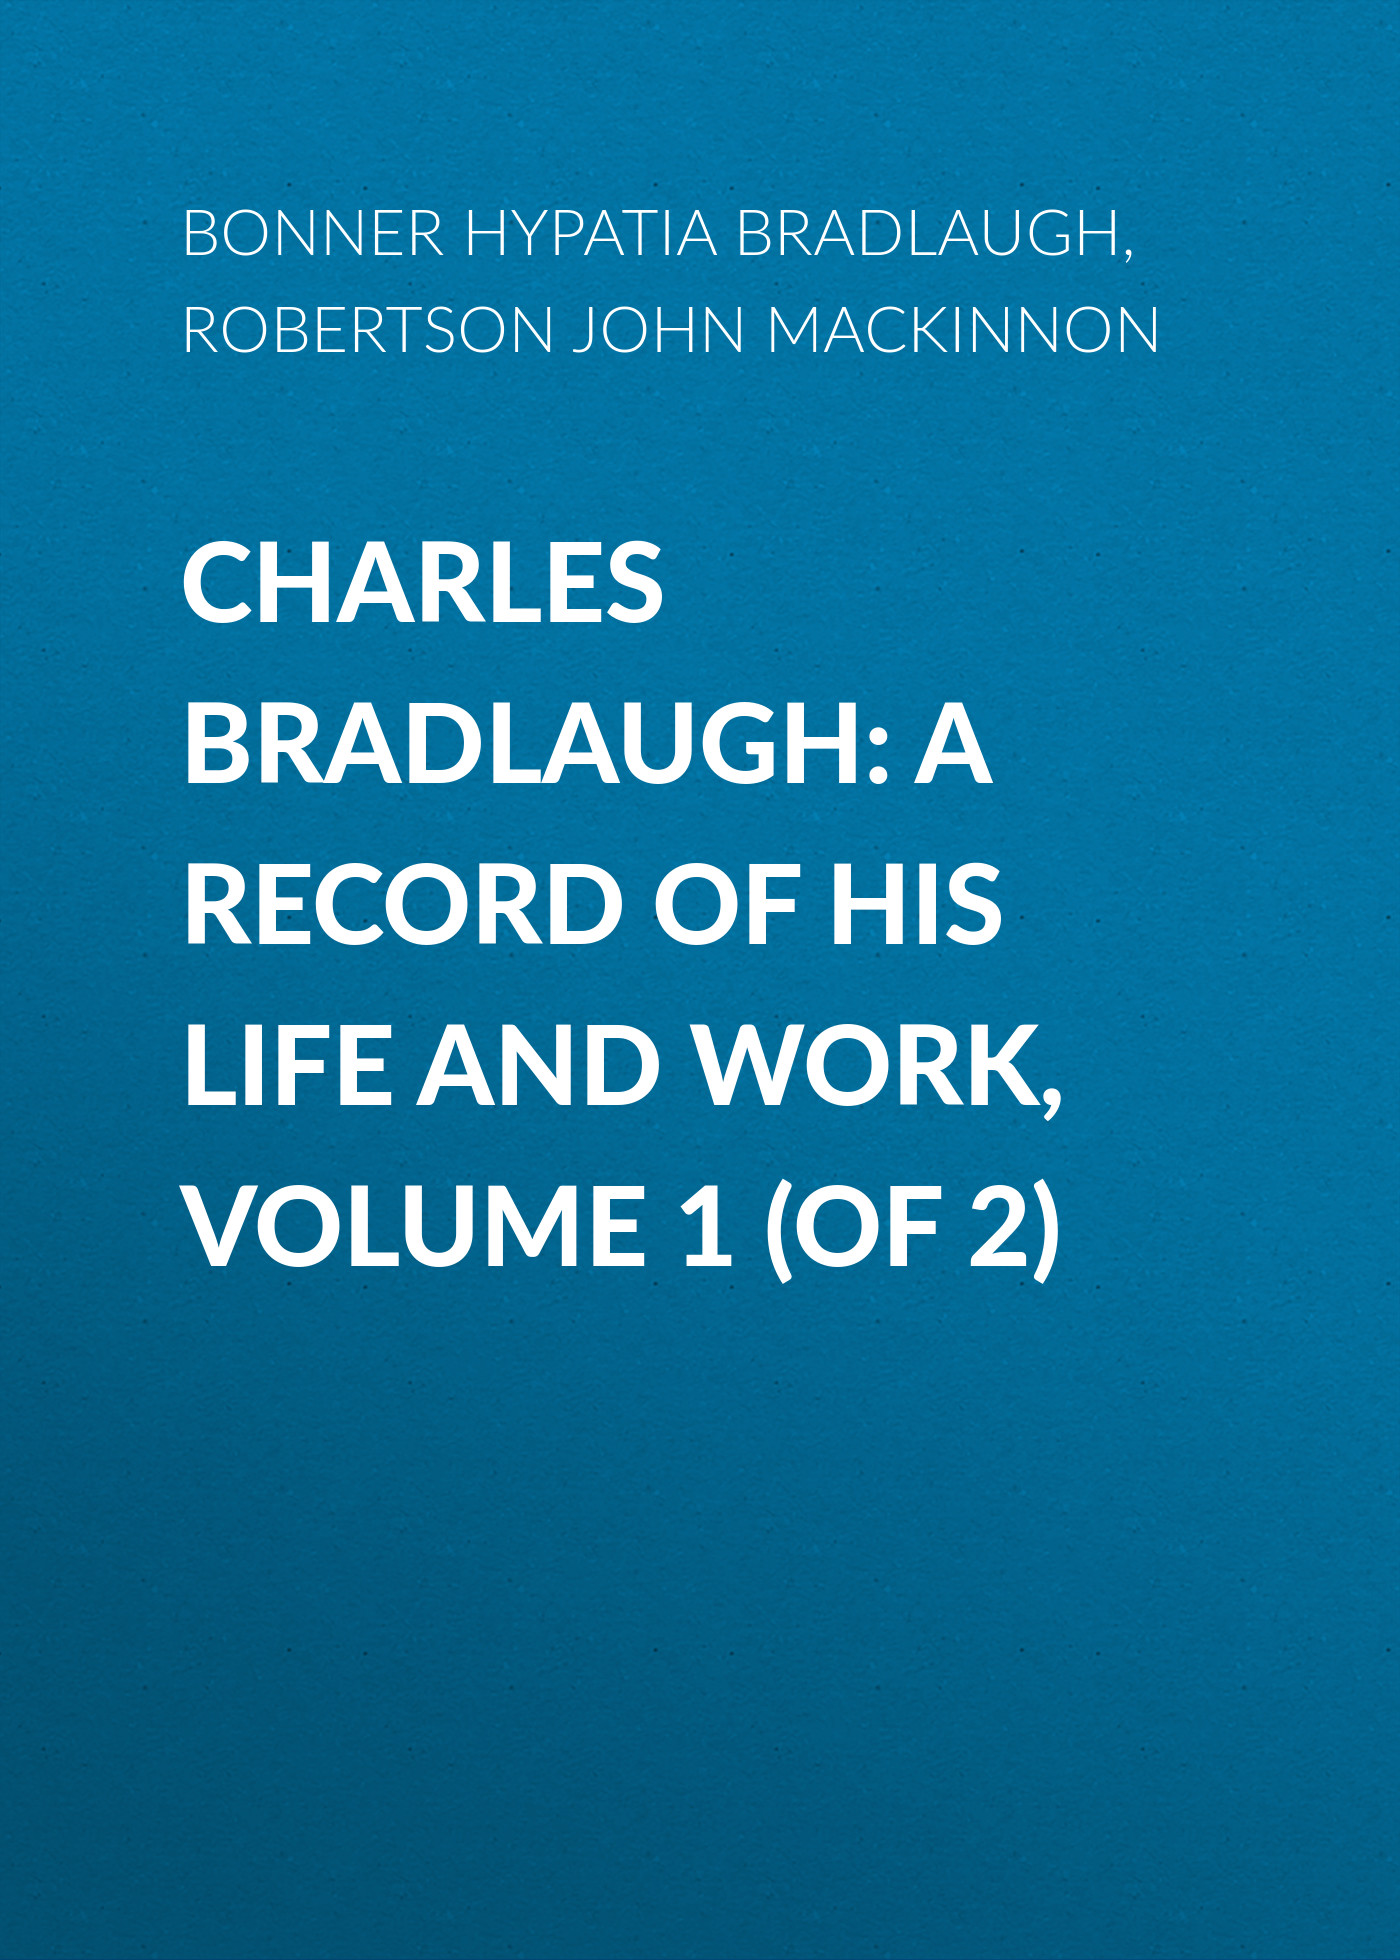 Bonner Hypatia Bradlaugh Charles Bradlaugh: a Record of His Life and Work, Volume 1 (of 2) cd iron maiden a matter of life and death